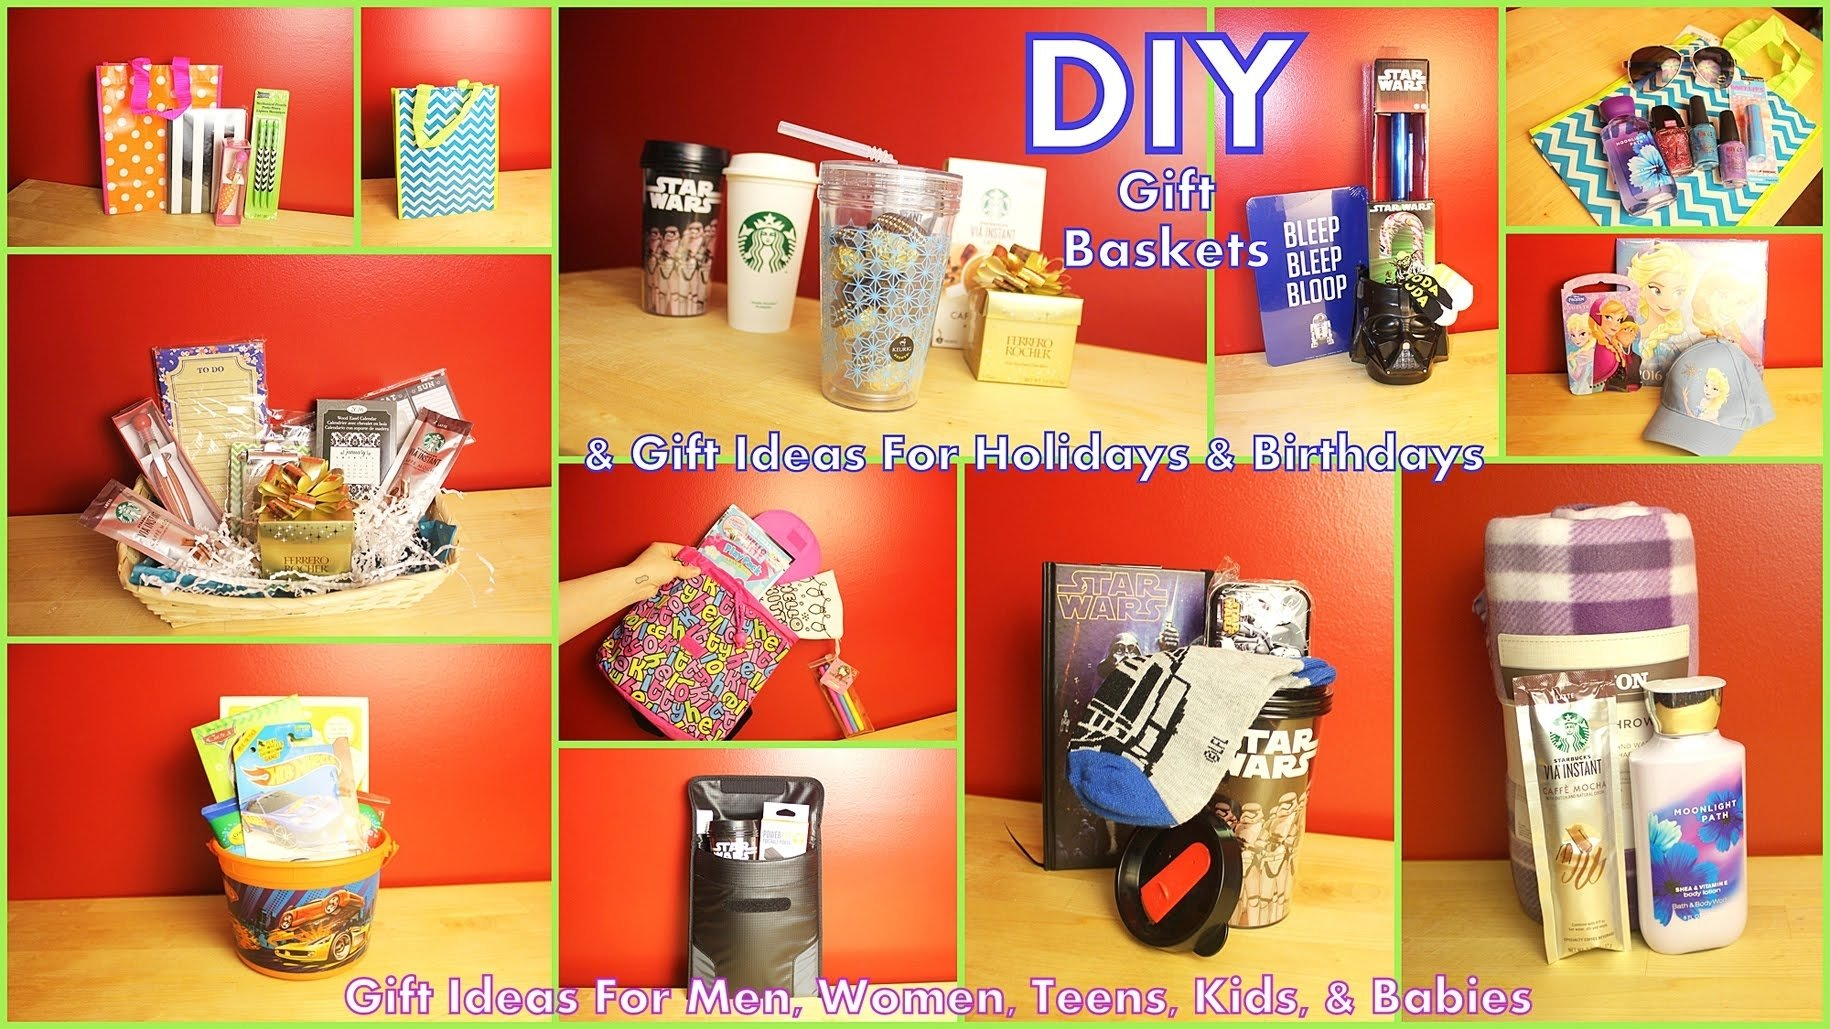 10 Lovely Birthday Ideas For Husband On A Budget diy gift baskets gift ideas how to assemble for men women kids 2